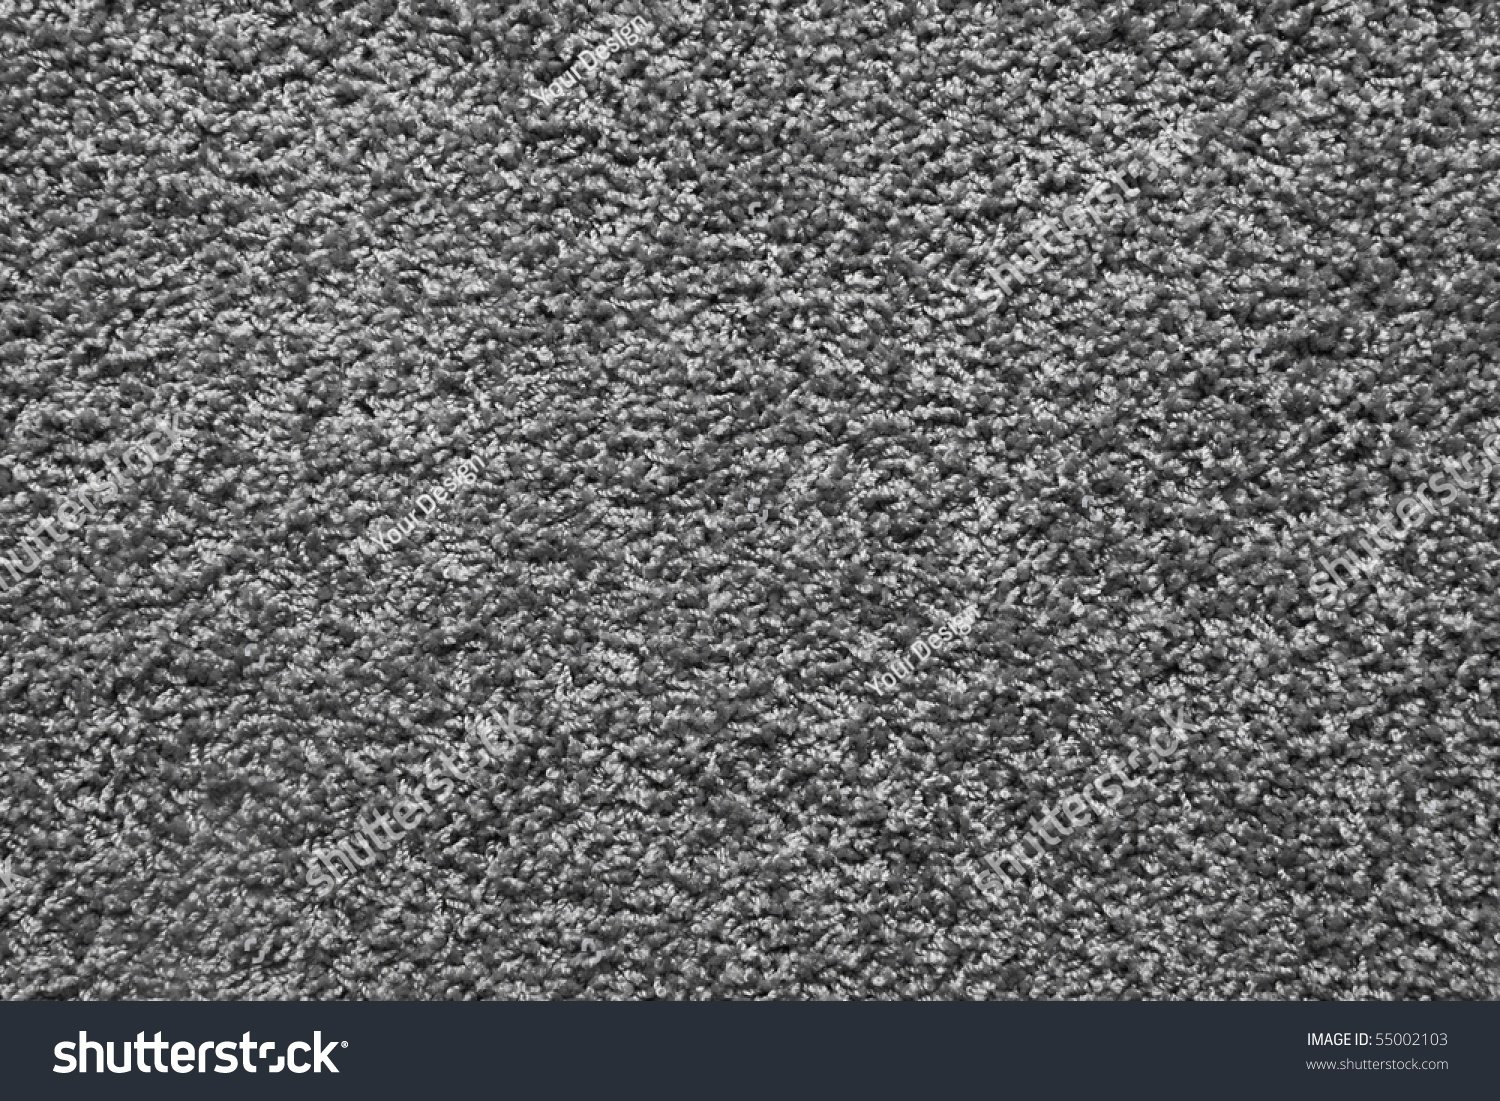 a grey carpet texture